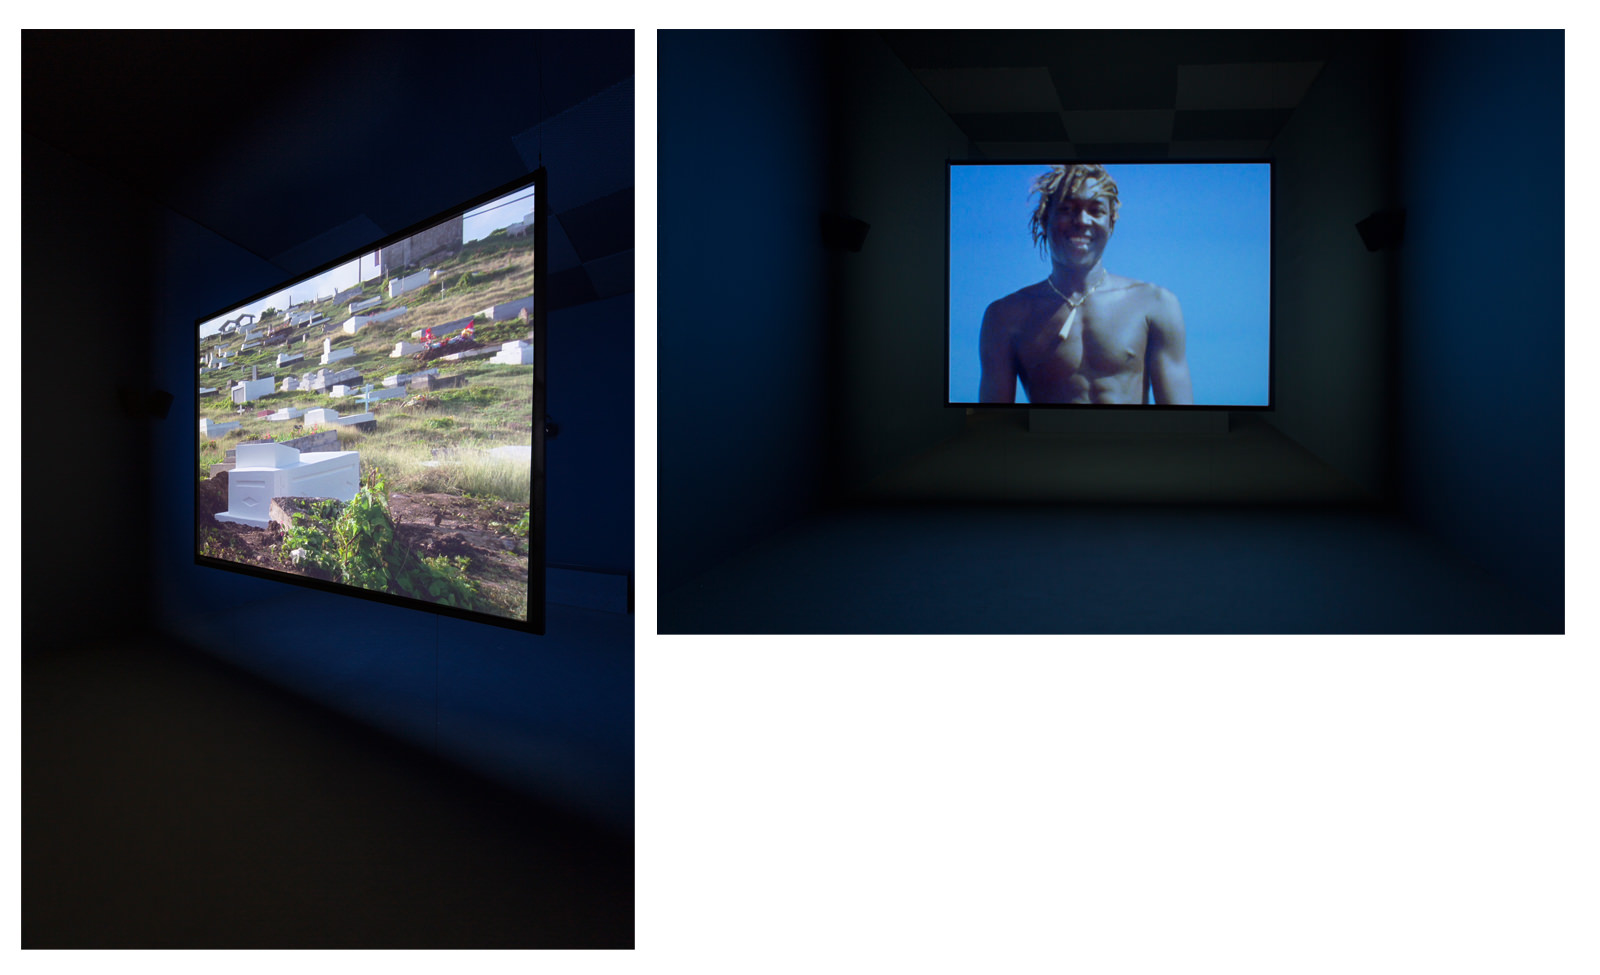 Vues de l'installation Ashes de  Steve McQueen (2014-2015), 56. Esposizione Internazionale d'Arte – la Biennale di Venezia, 2015. Crédit photo : Roberto Marosi. Courtesy of the artist and Marian Goodman Gallery.